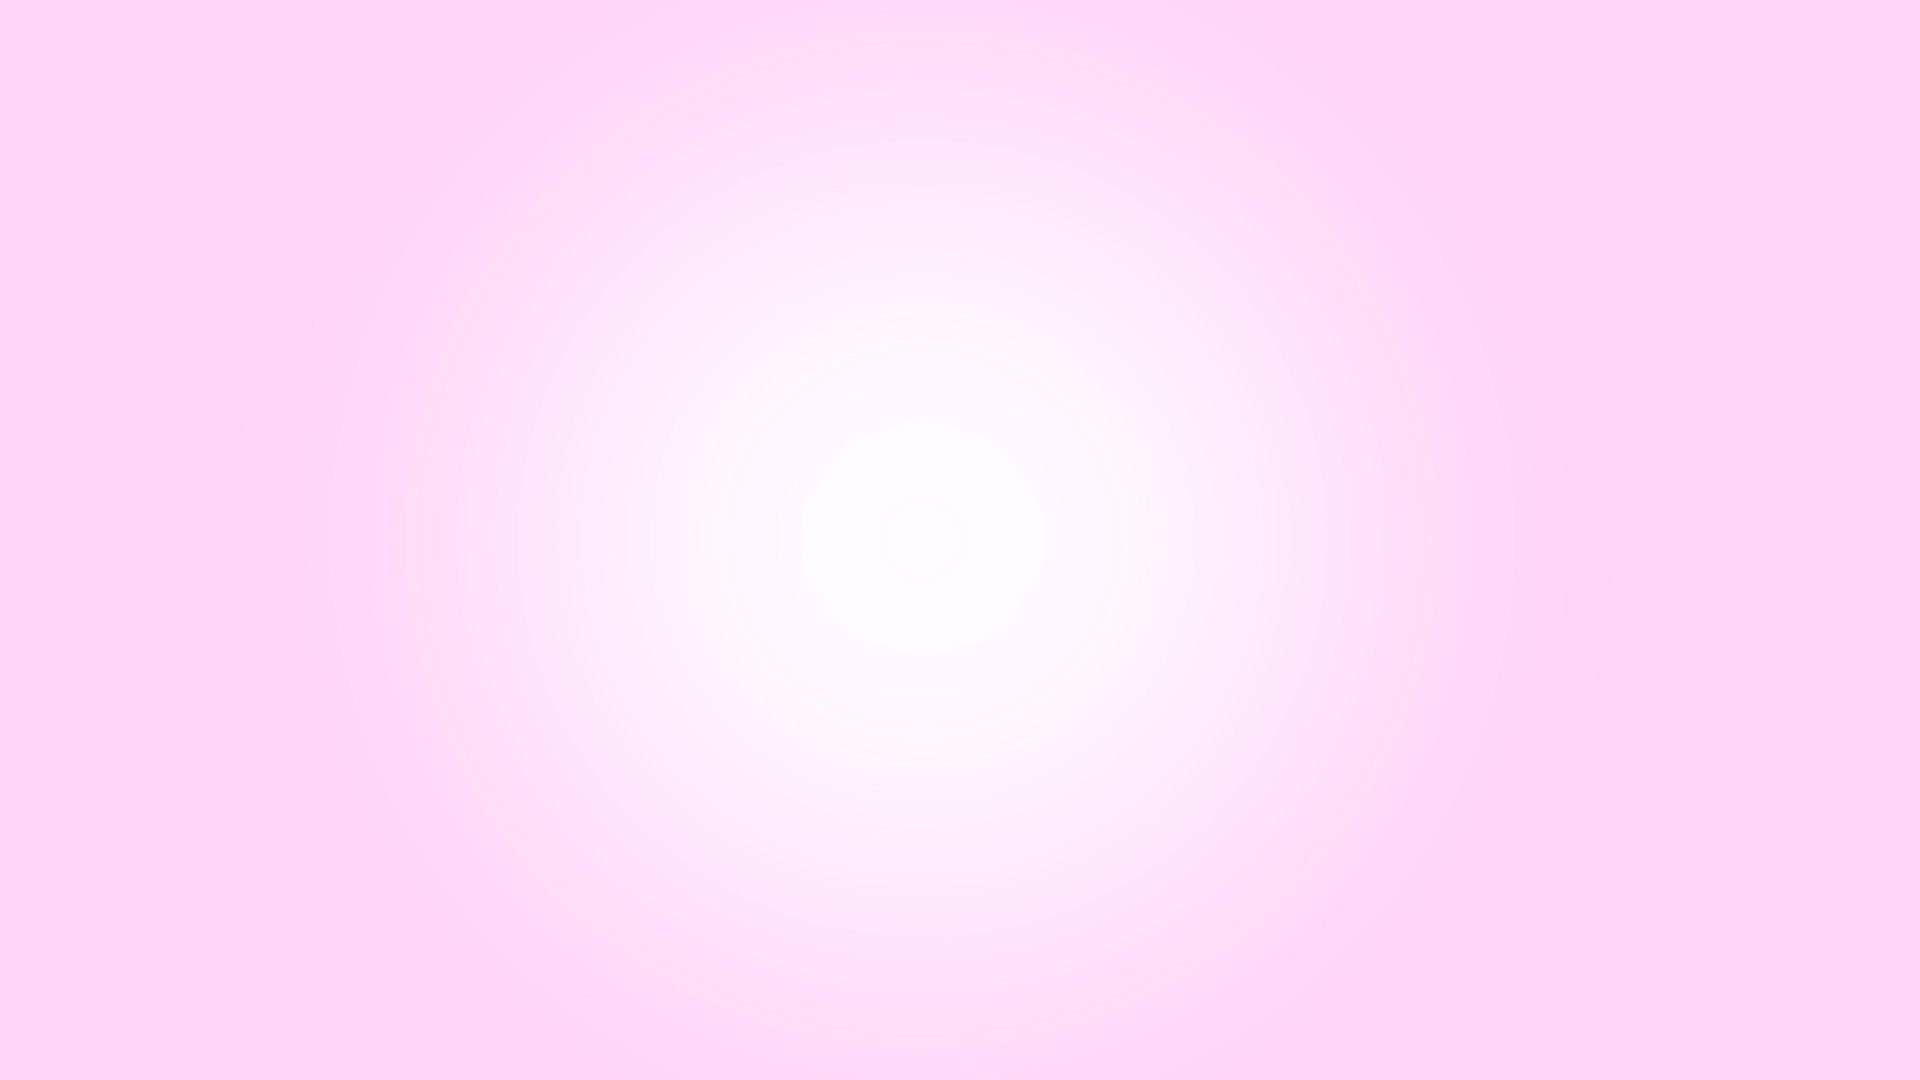 White and Pink Wallpaper - WallpaperSafari